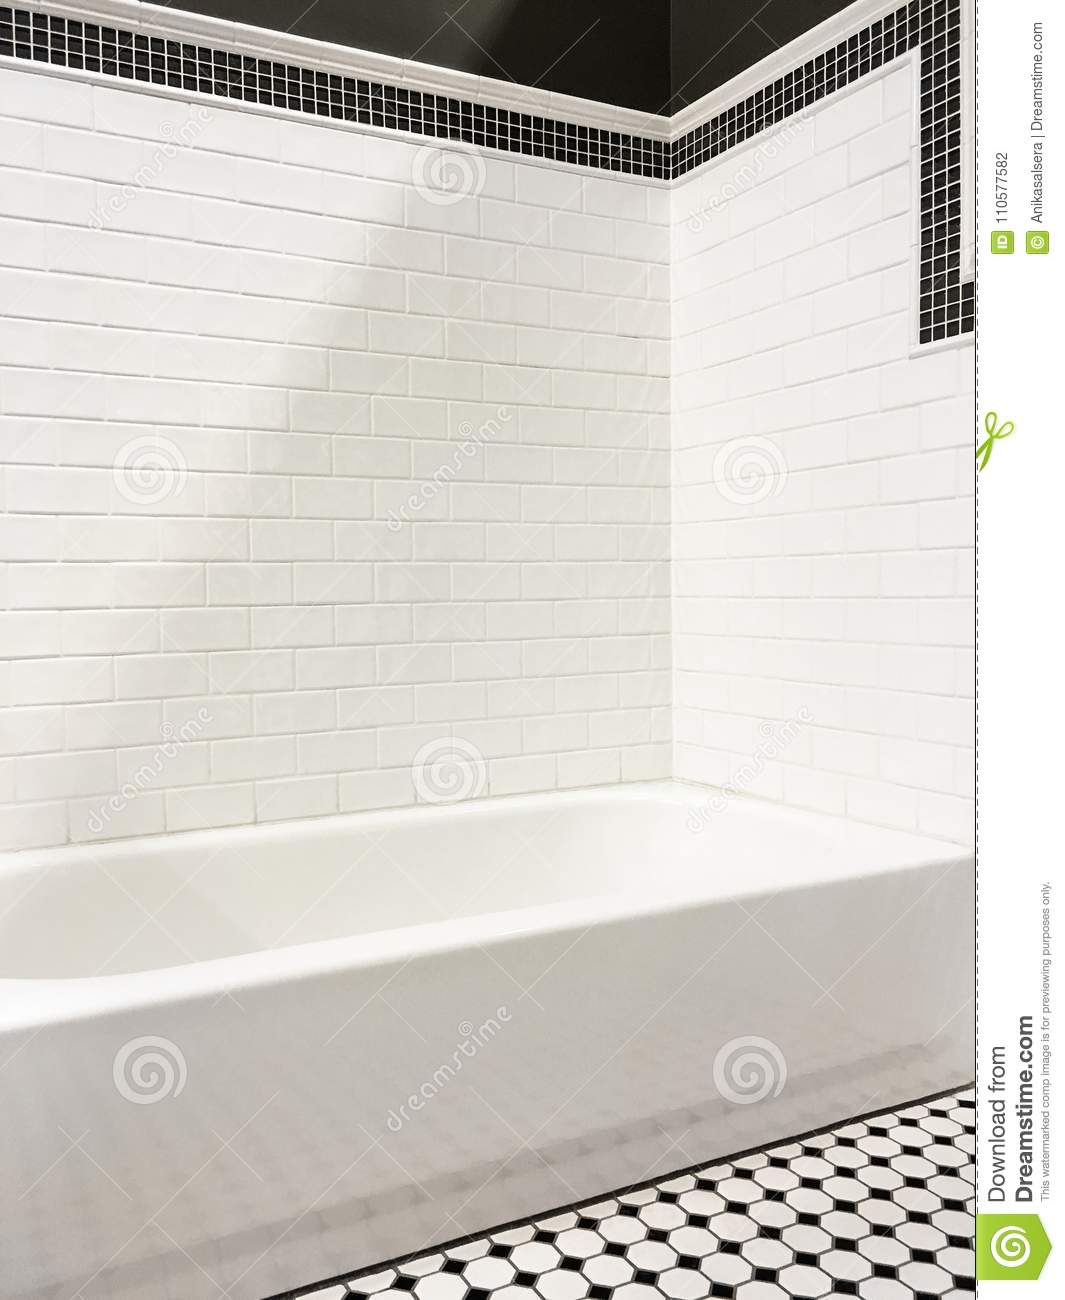 New Modern Bathroom With White Tile Walls Stock Photo - Image of ...